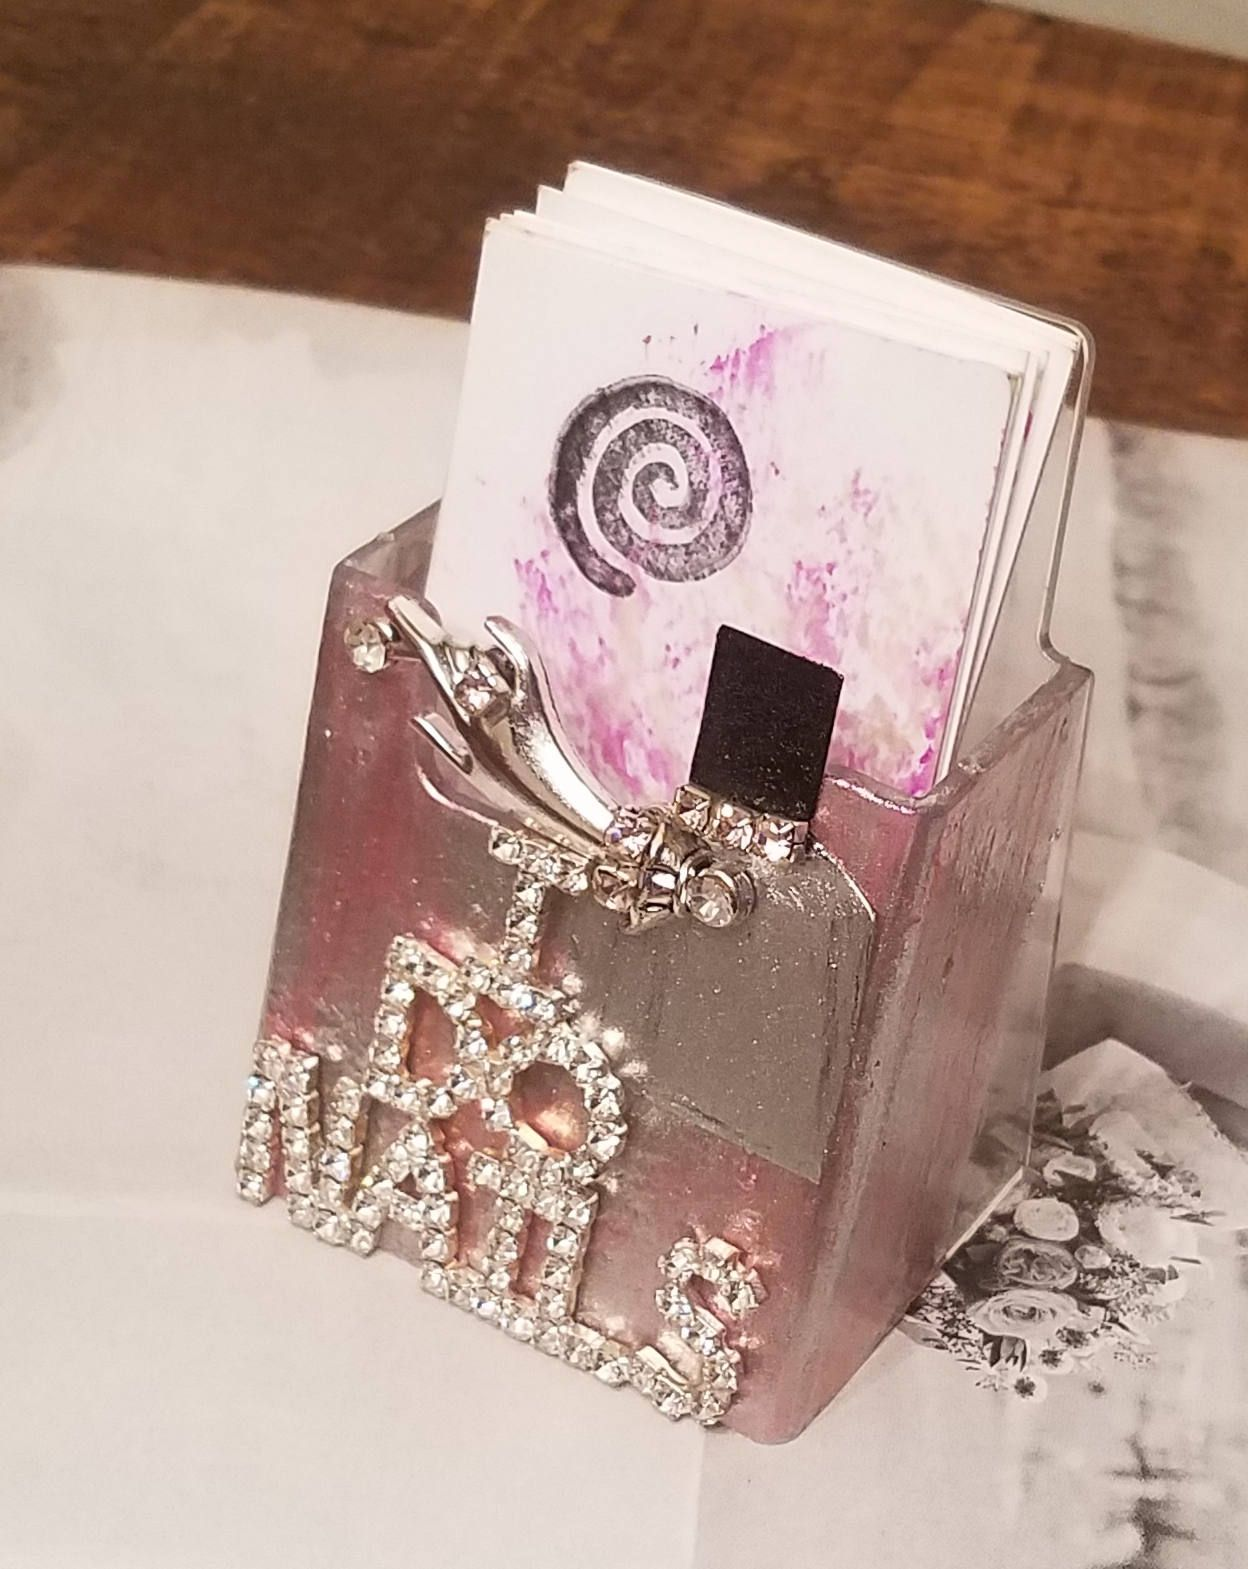 Nail Tech/ Vertical Business Card Holder/I Do Nails